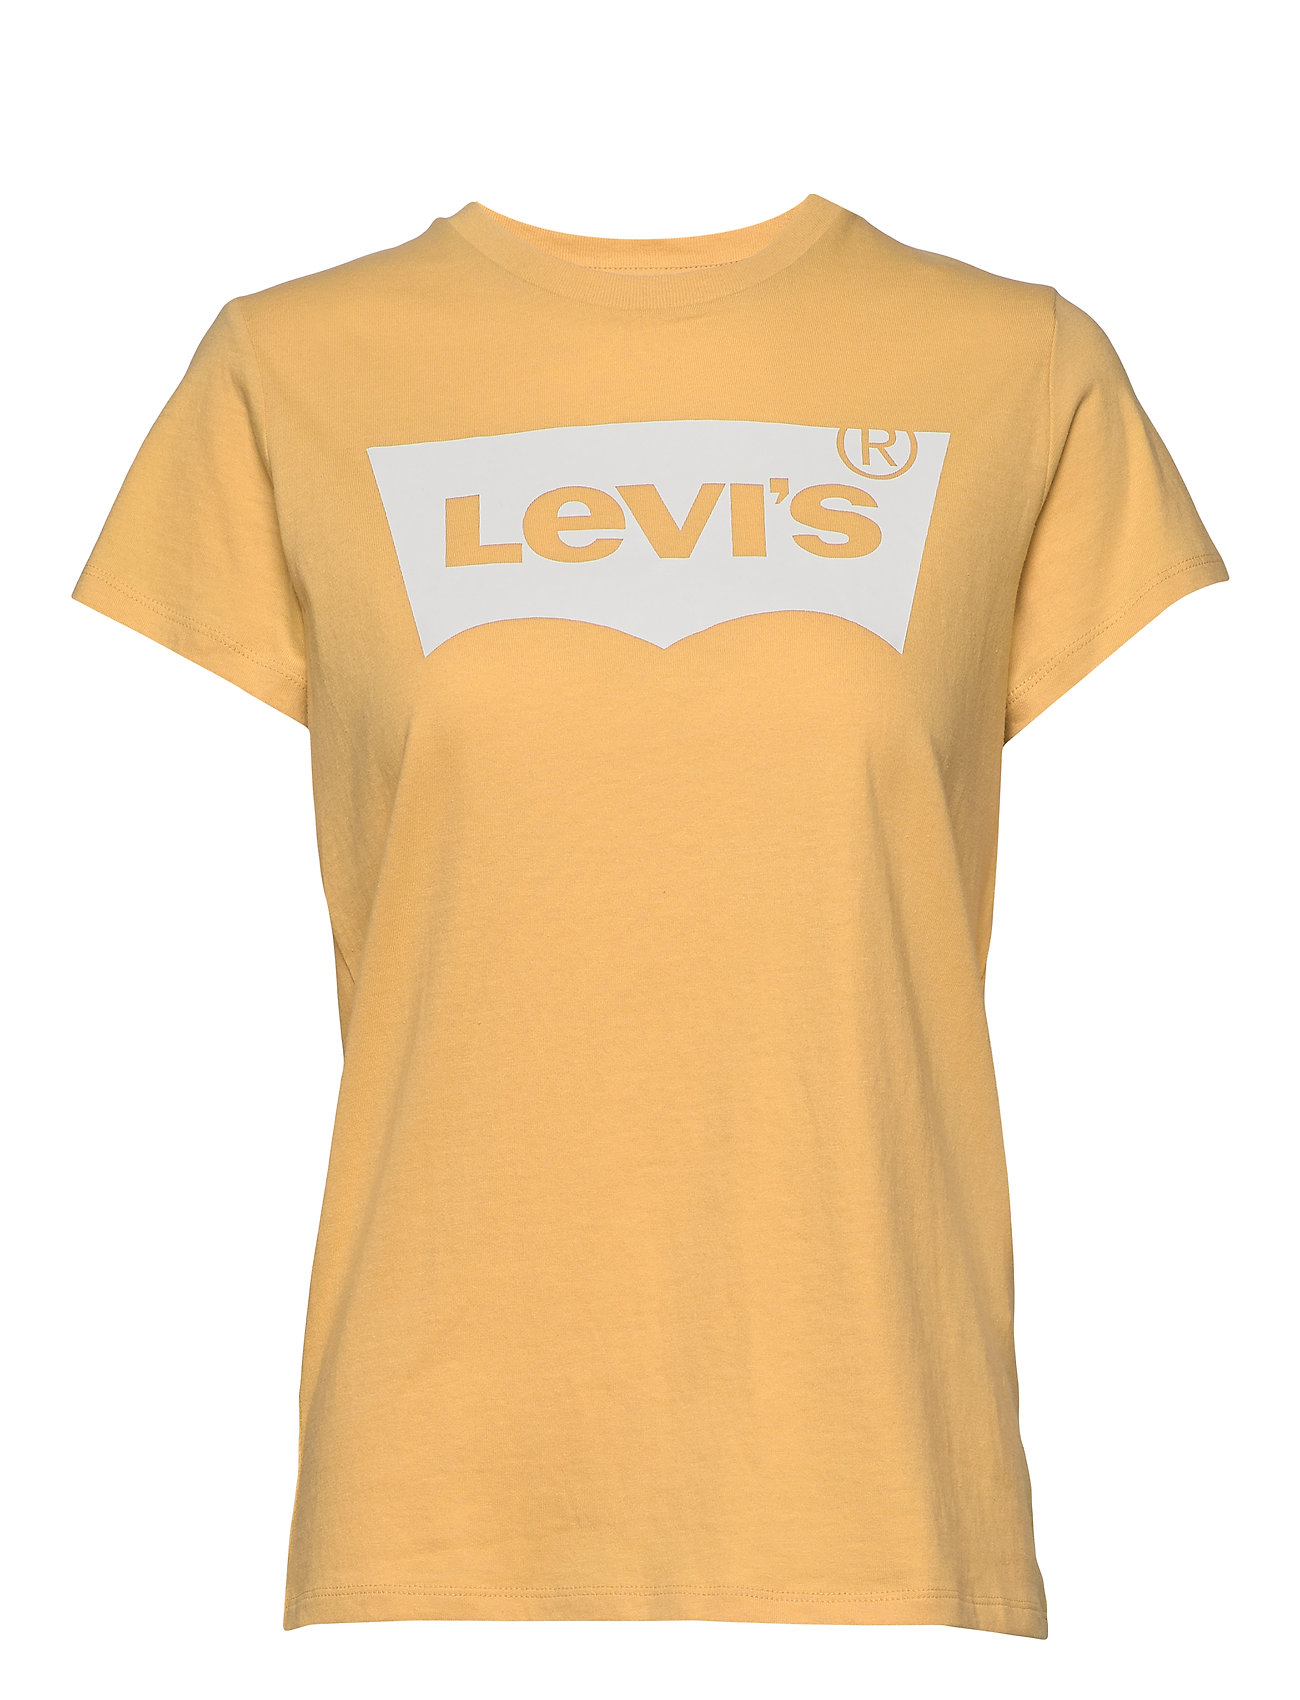 LEVI´S Women THE PERFECT TEE BW T2 OCHRE GR - YELLOWS/ORANGES